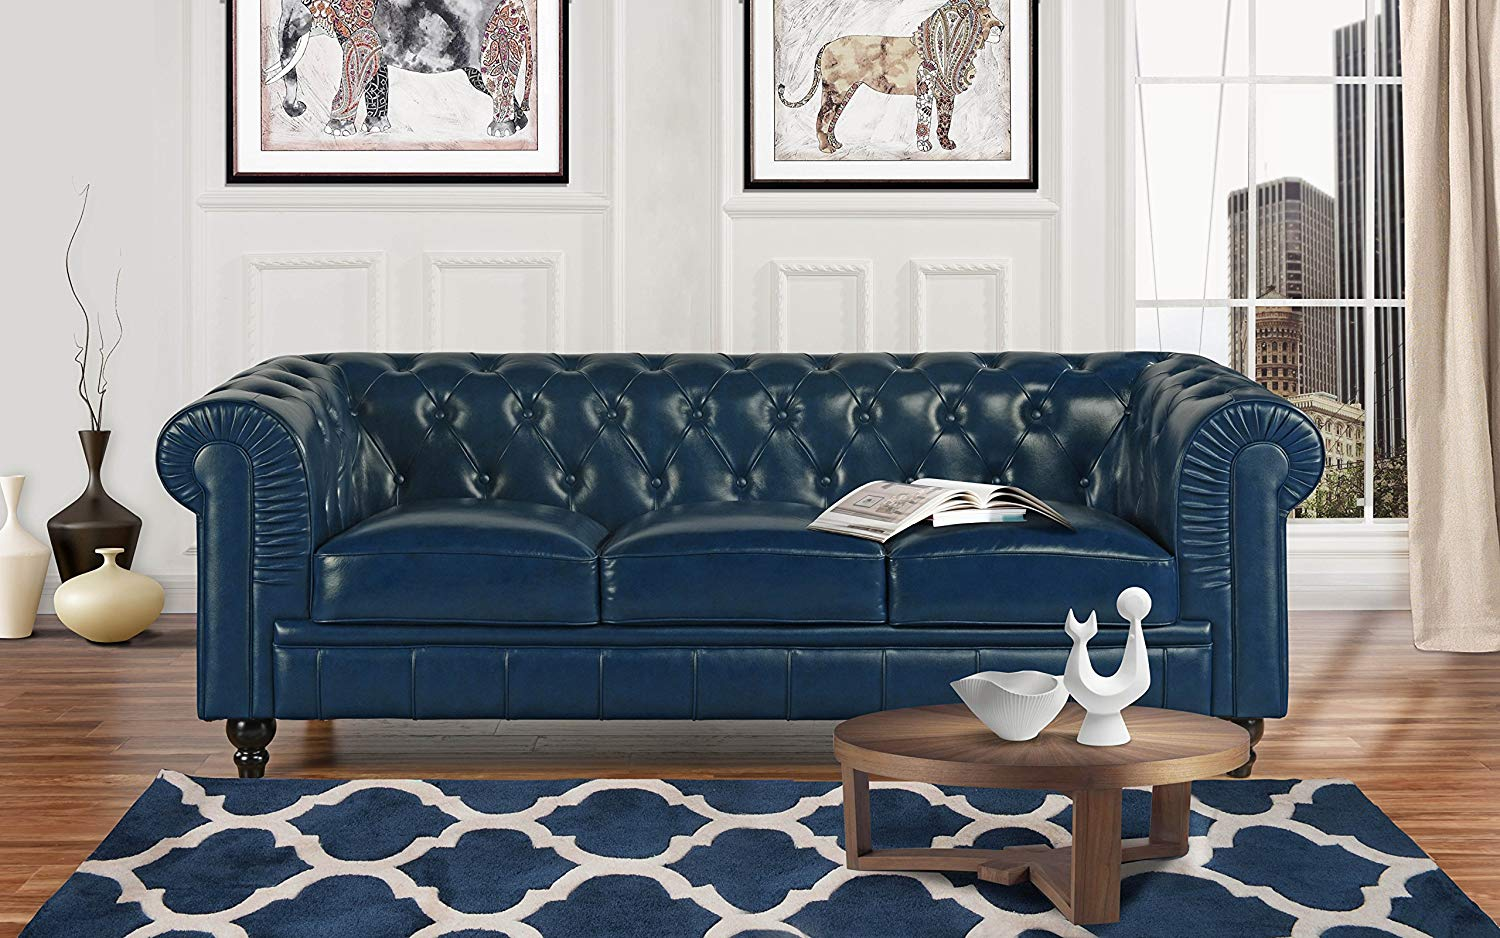 Swell Cheap Chesterfield Leather Sofa Uk Find Chesterfield Download Free Architecture Designs Xerocsunscenecom